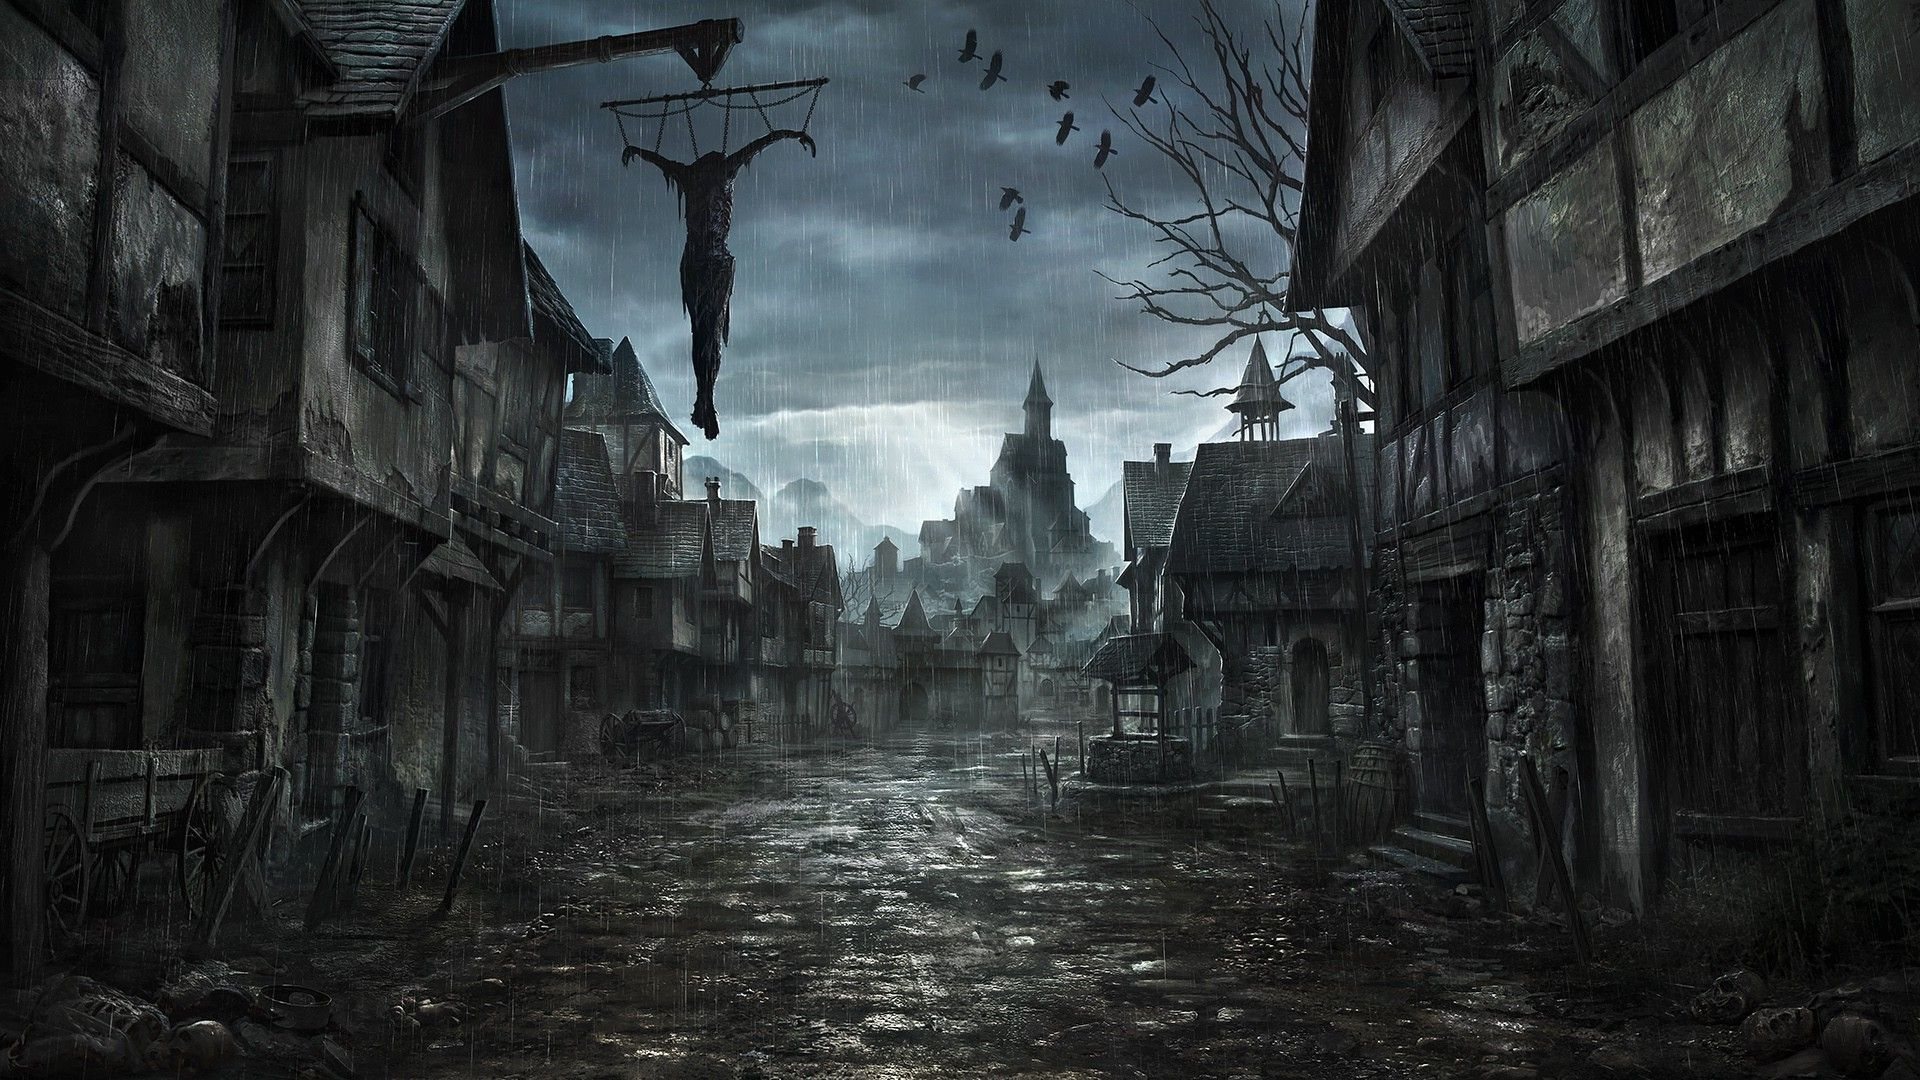 medieval dark fantasy hd - photo #17